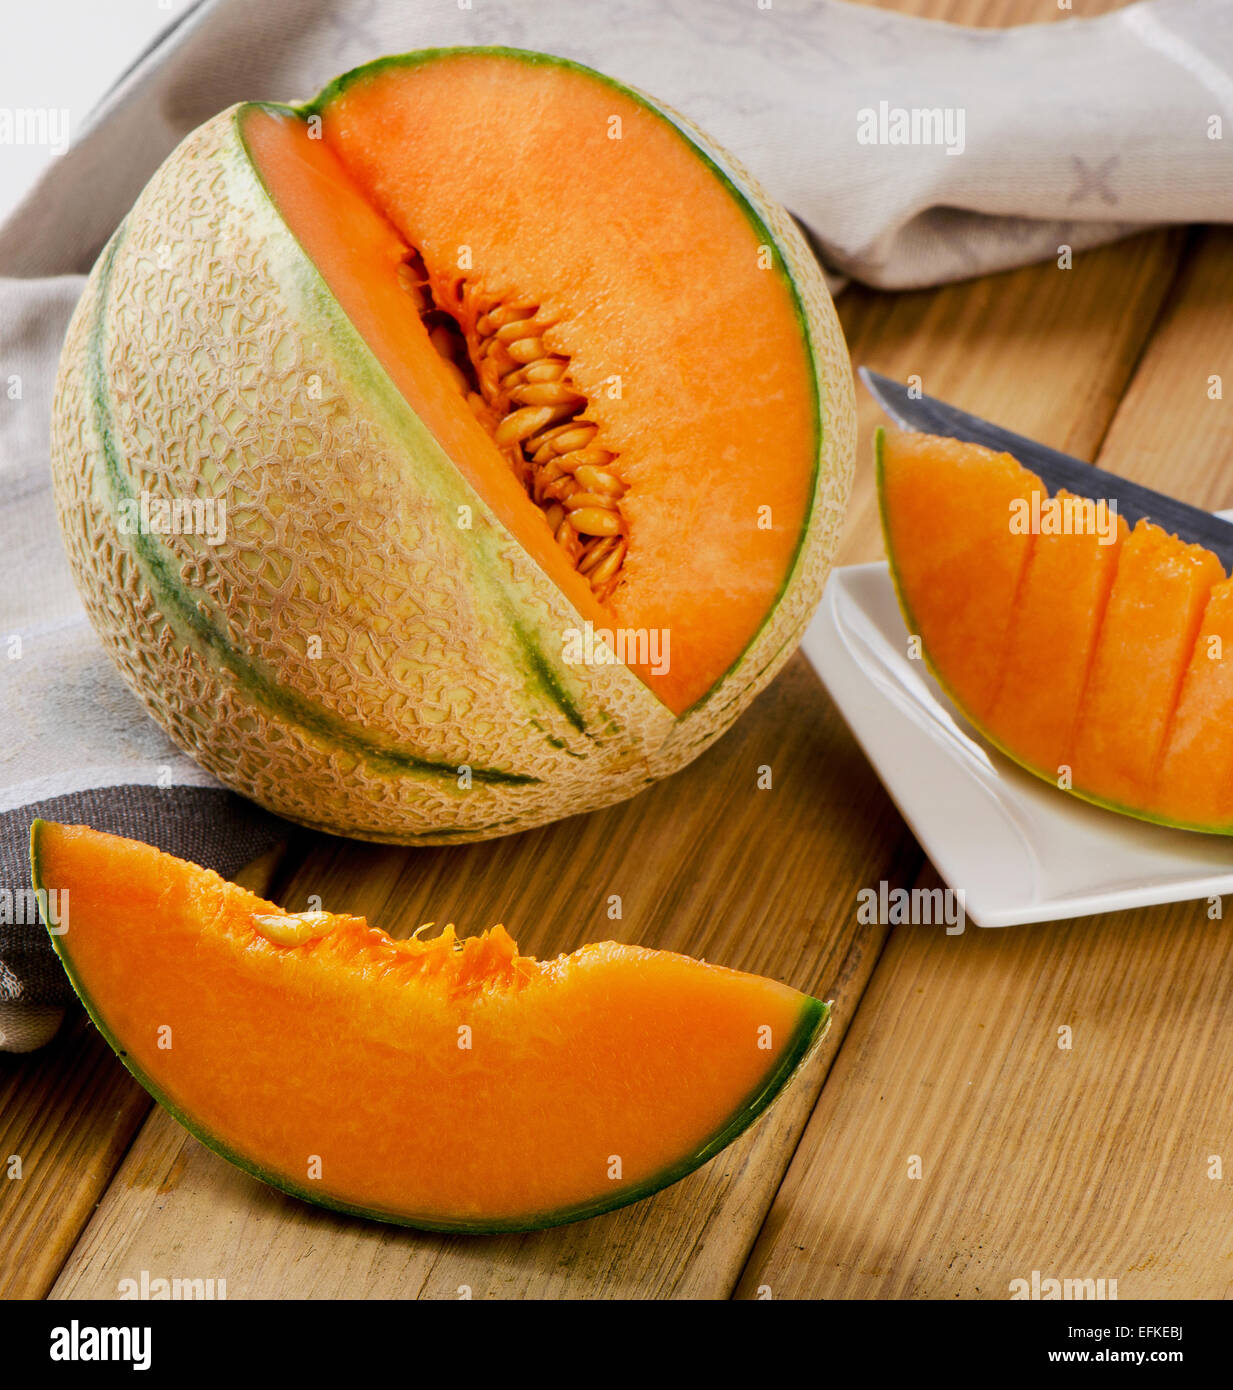 Melon  on  wooden background. Selective focus - Stock Image